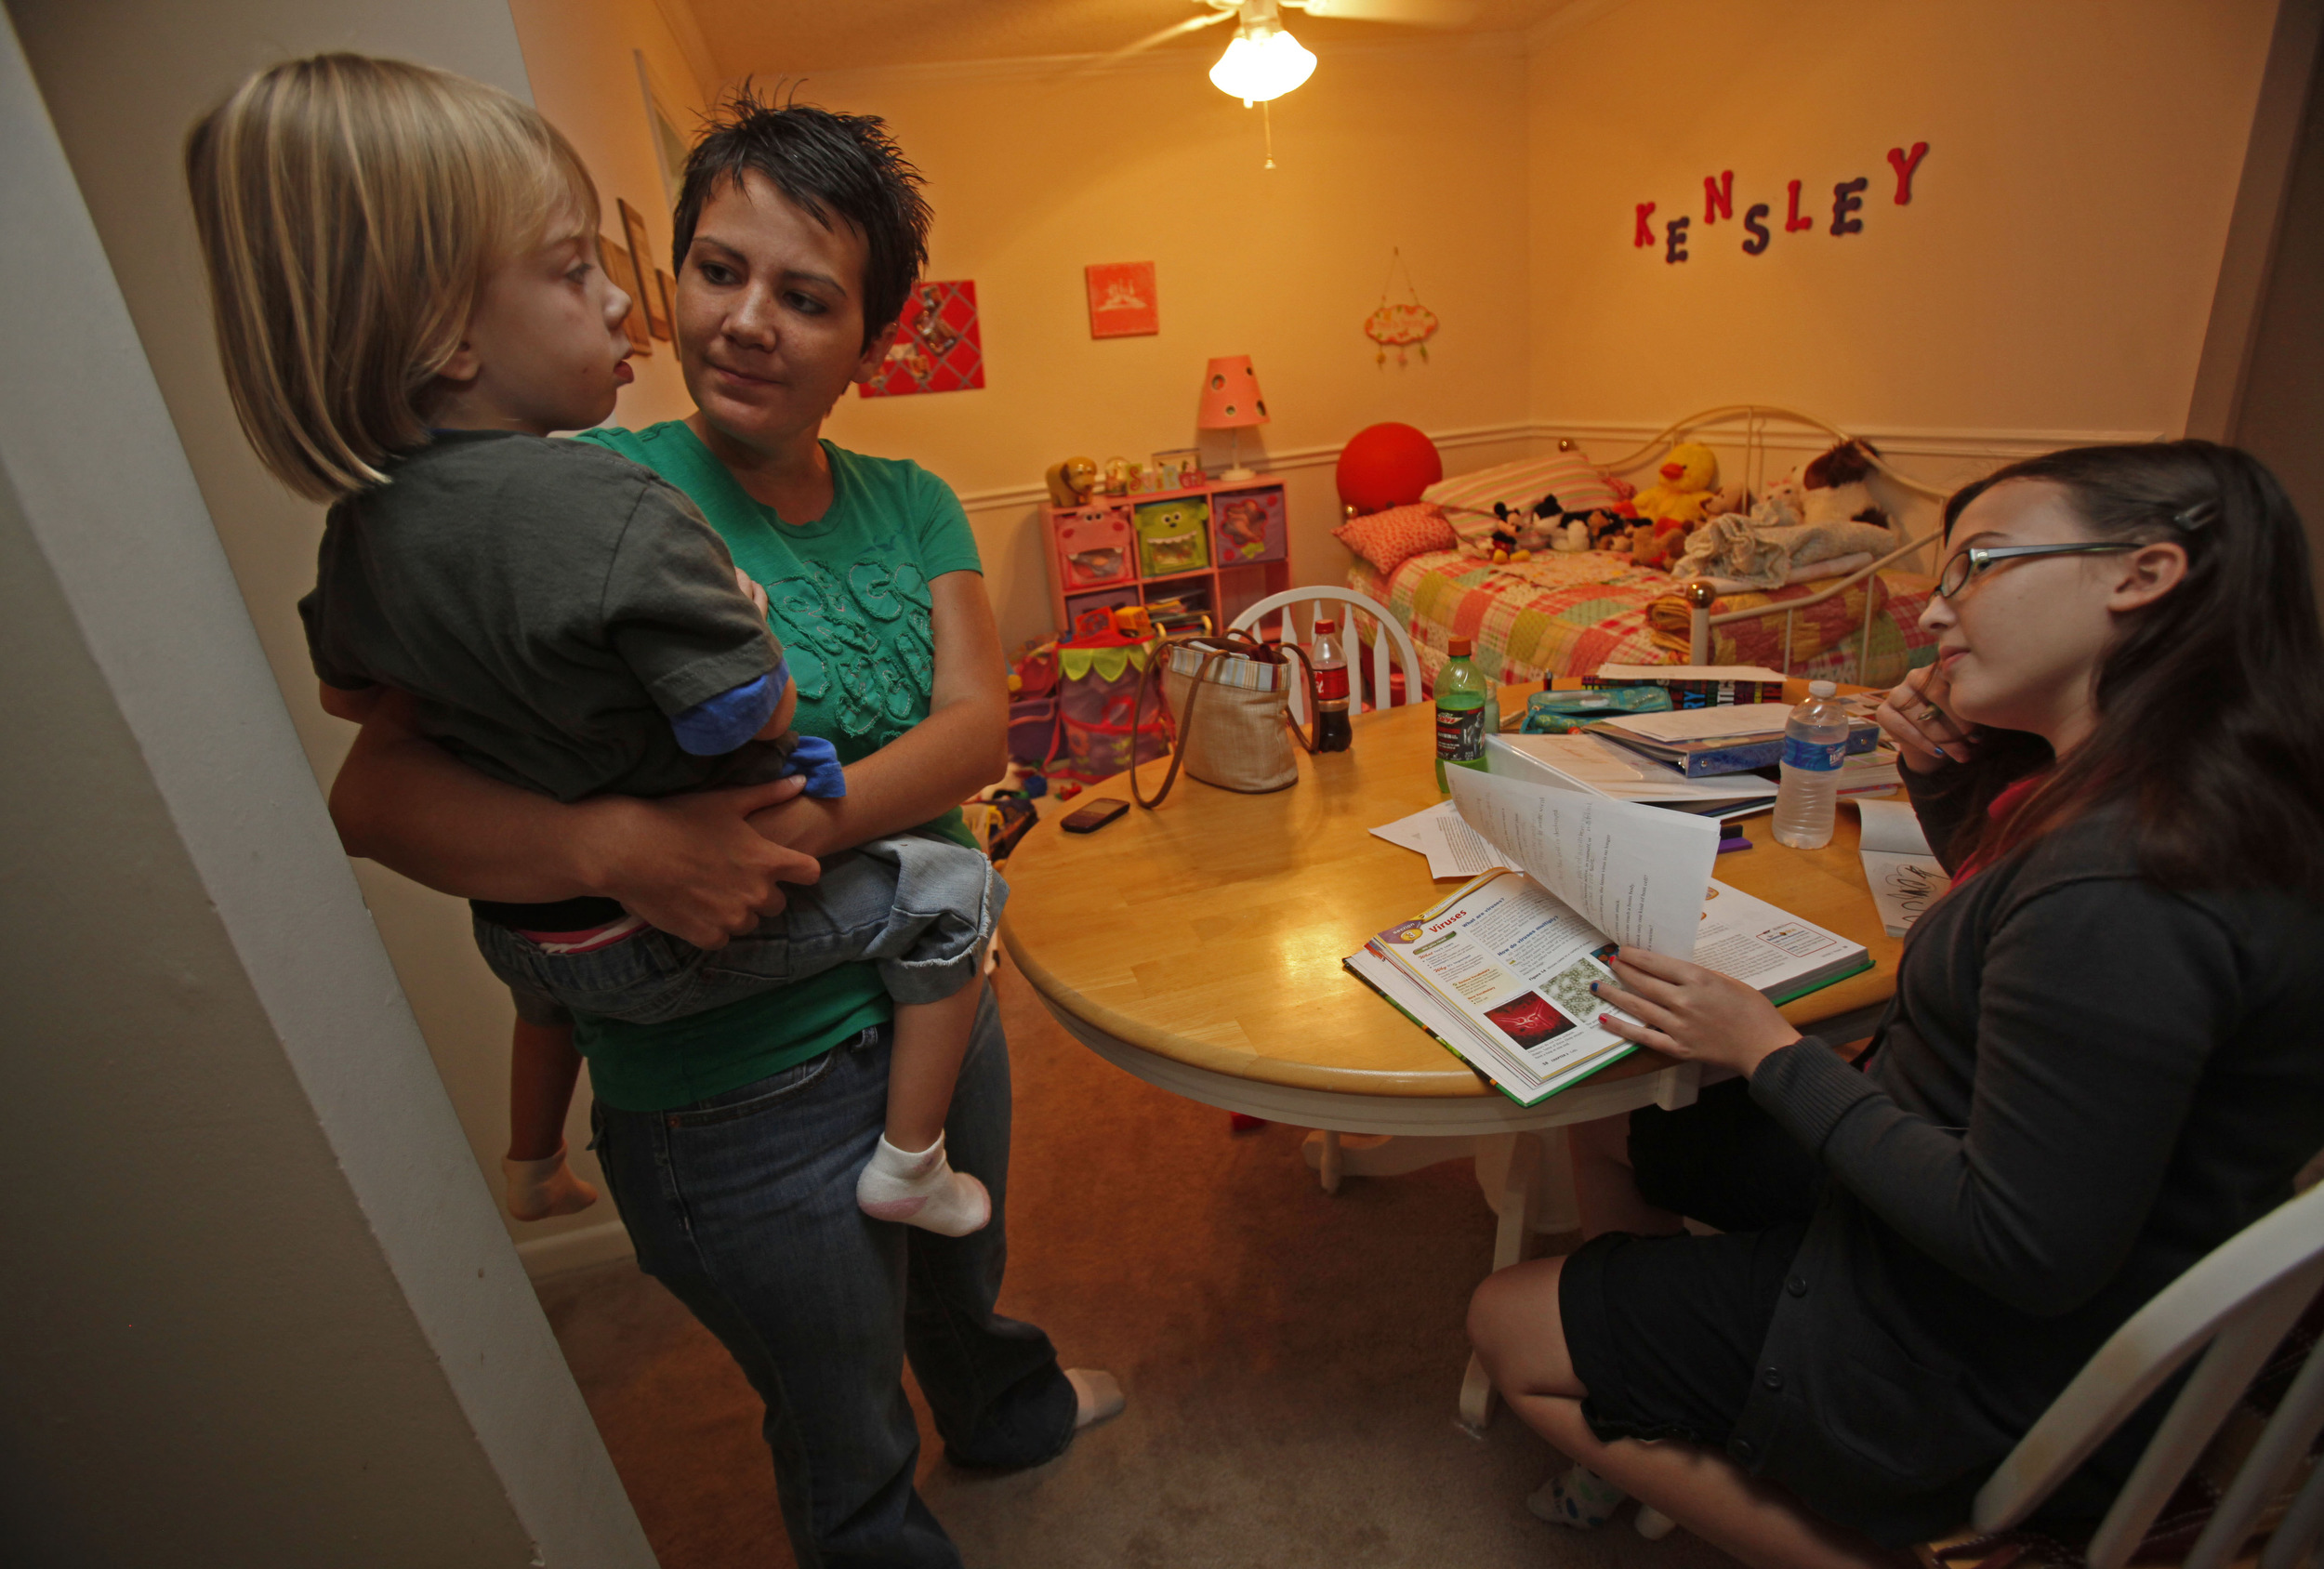 Lori Harrington and daughters Jasey, 12, and Kensley, 4, spend evenings around the kitchen table in their small apartment September 8, 2010 in Nashville, Tenn. Harrington moved to an apartment and left her job due to the stress of recovering from the flood.